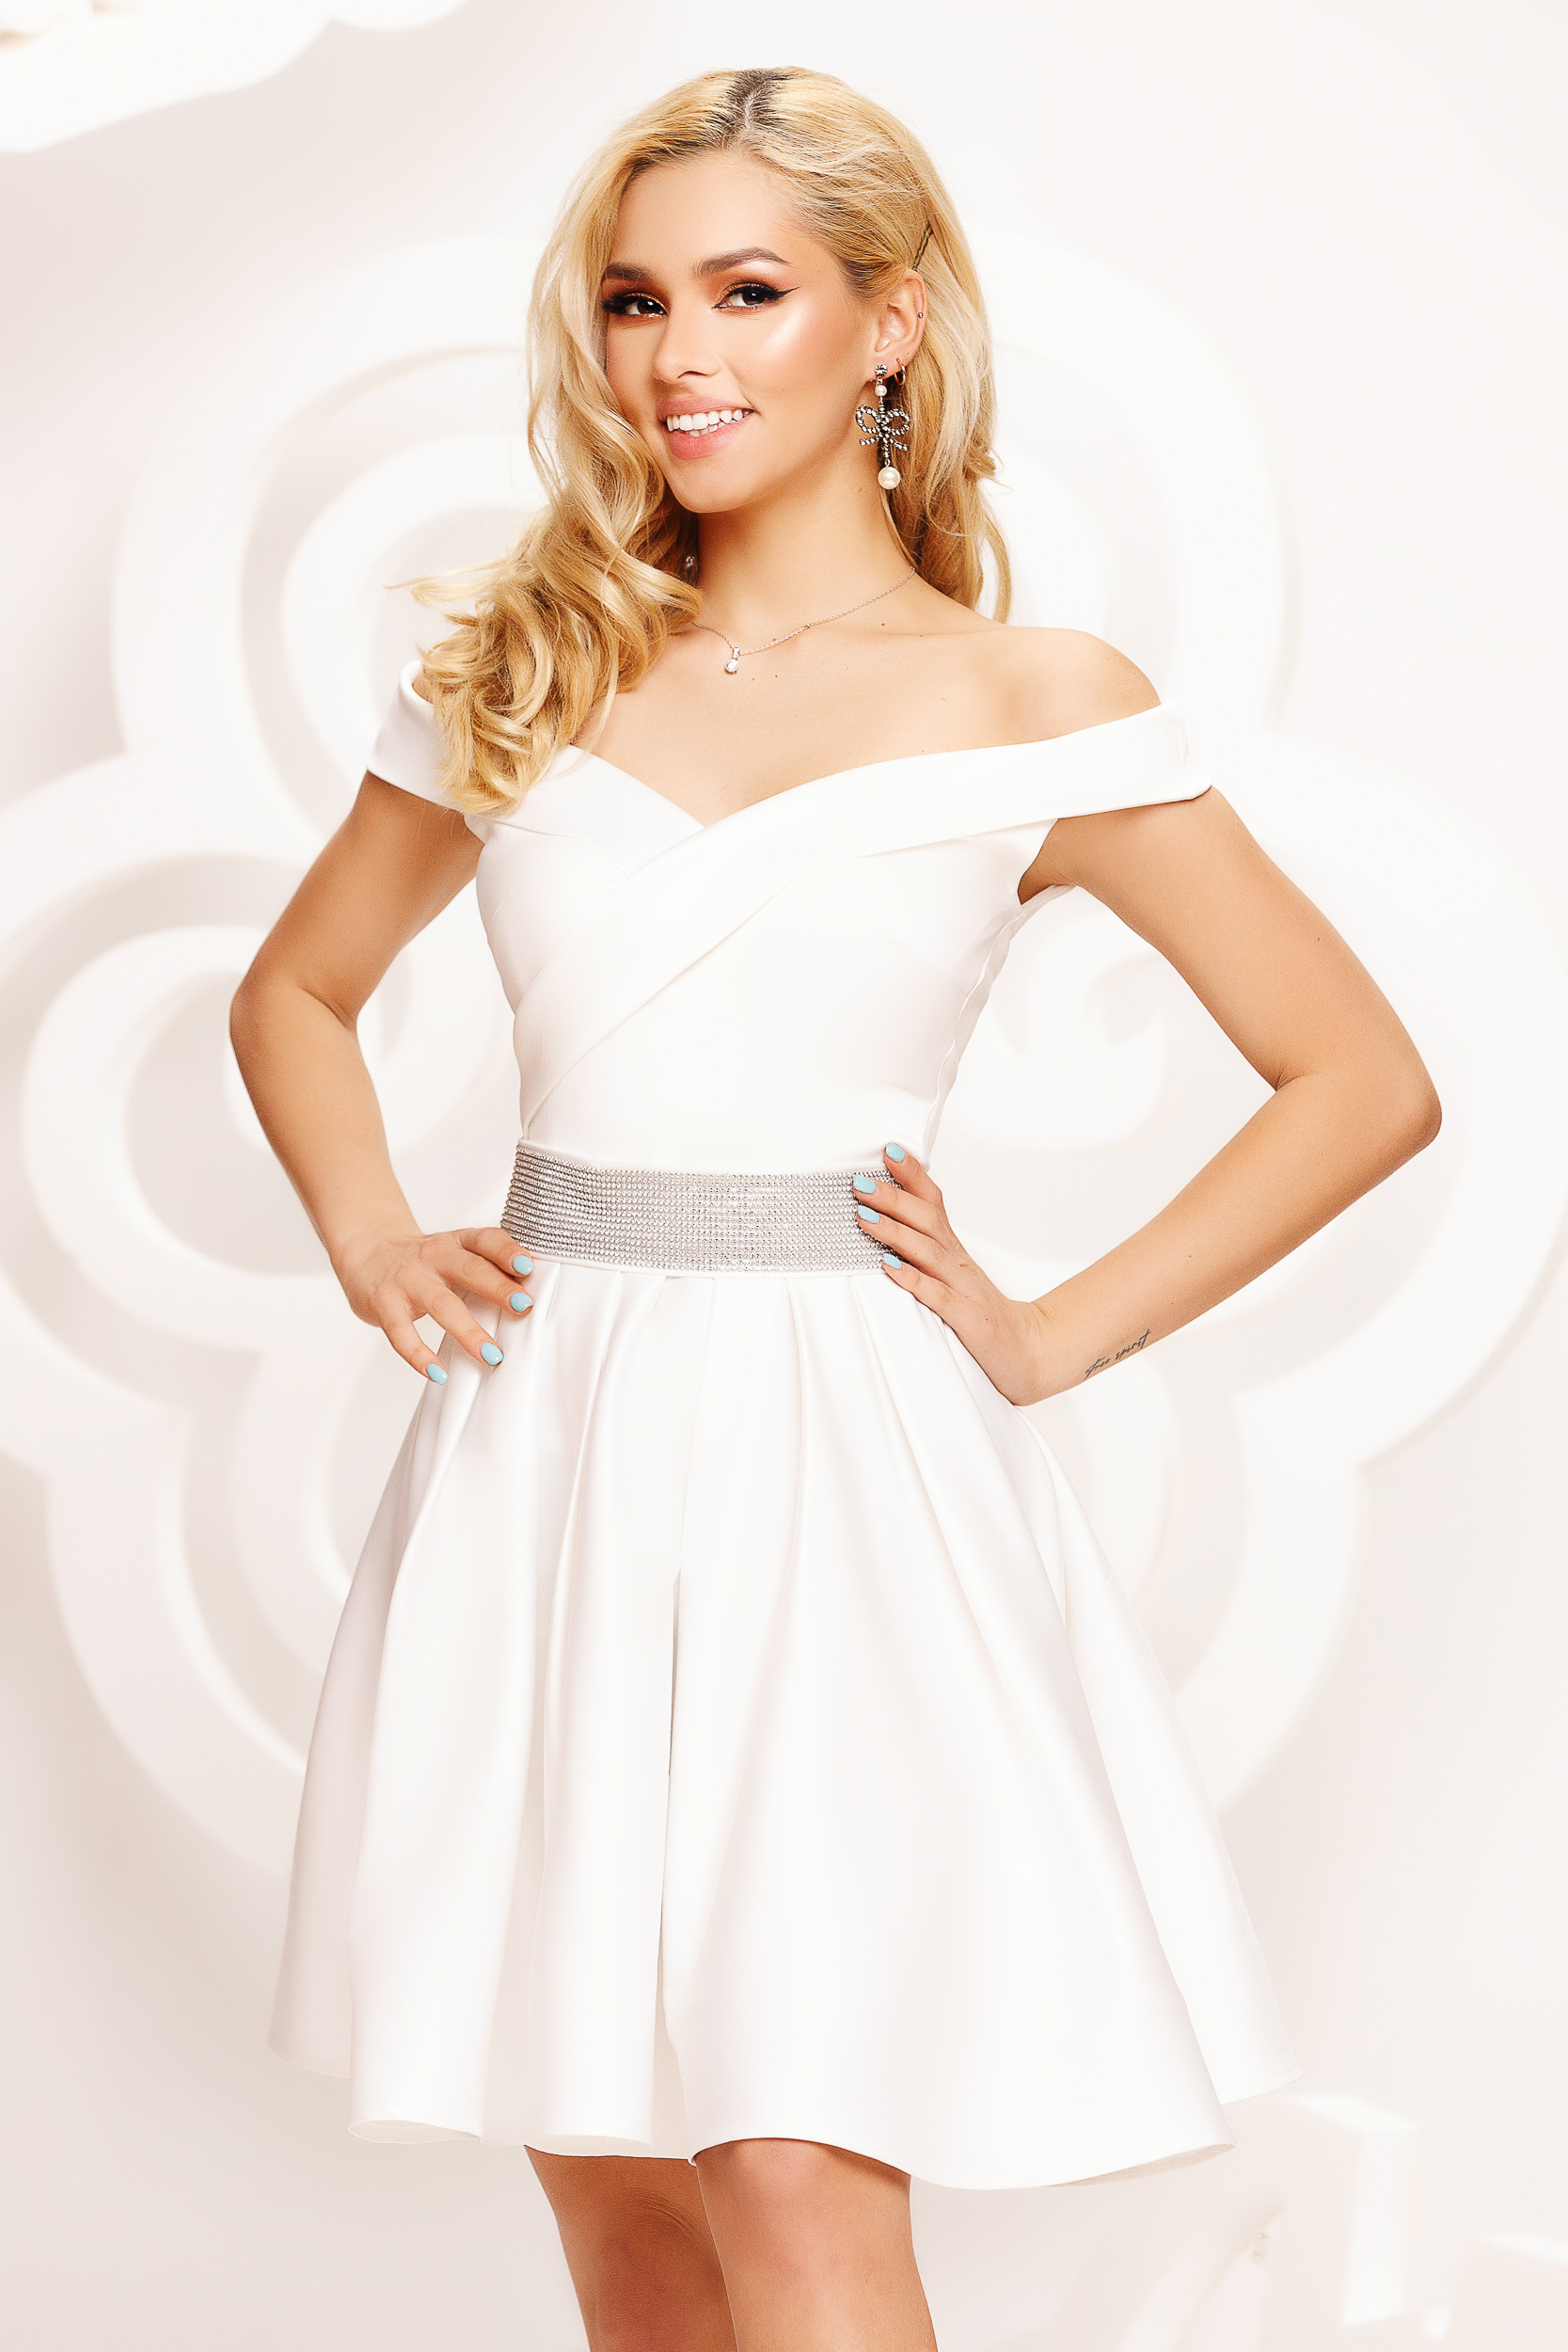 White dress from satin cloche occasional on the shoulders short cut